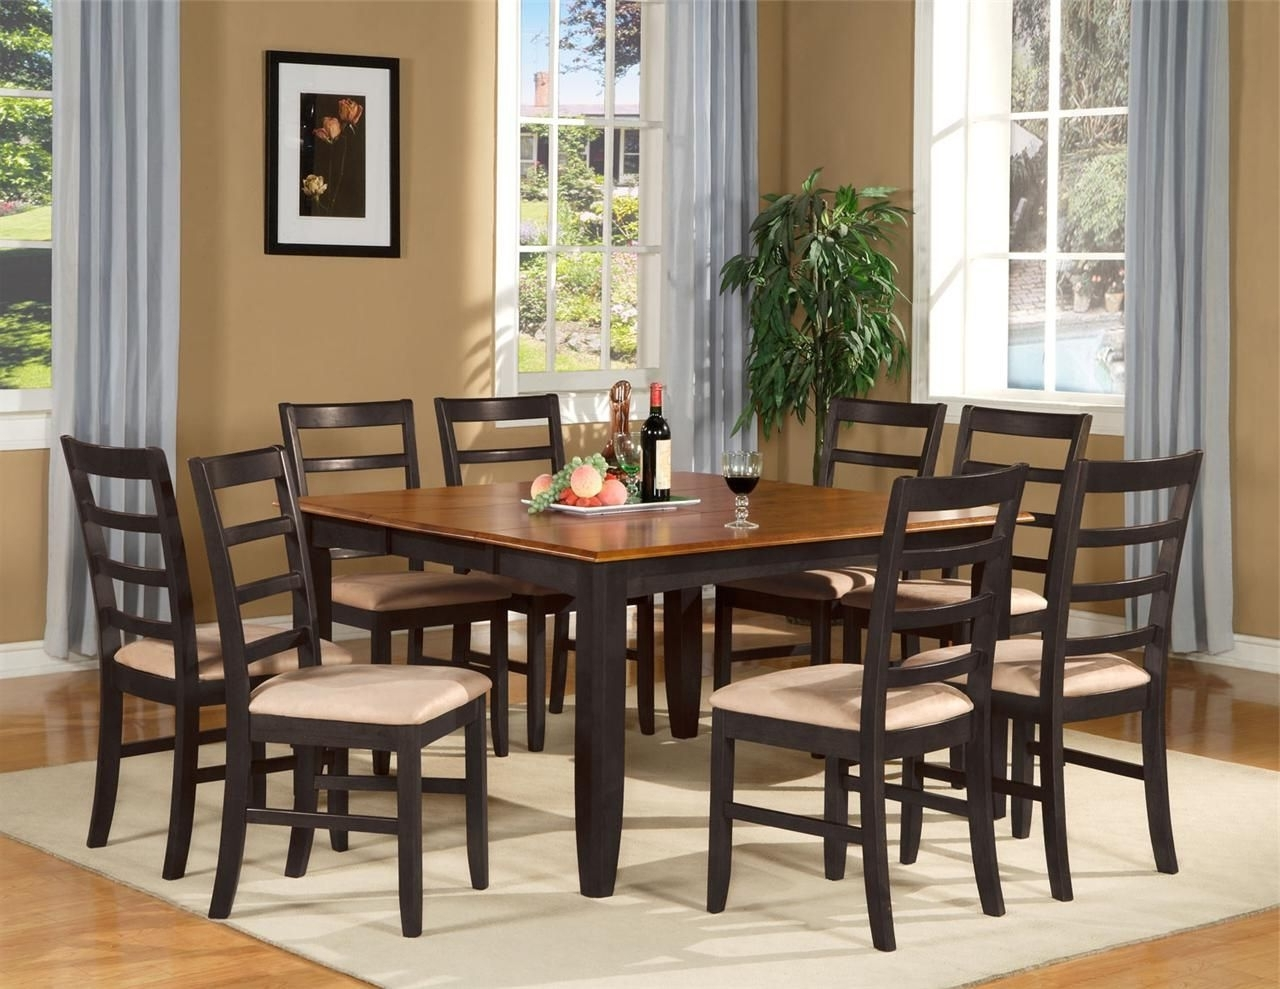 Best And Newest 9 Pc Square Dinette Dining Room Table Set And 8 Chairs (Gallery 24 of 25)